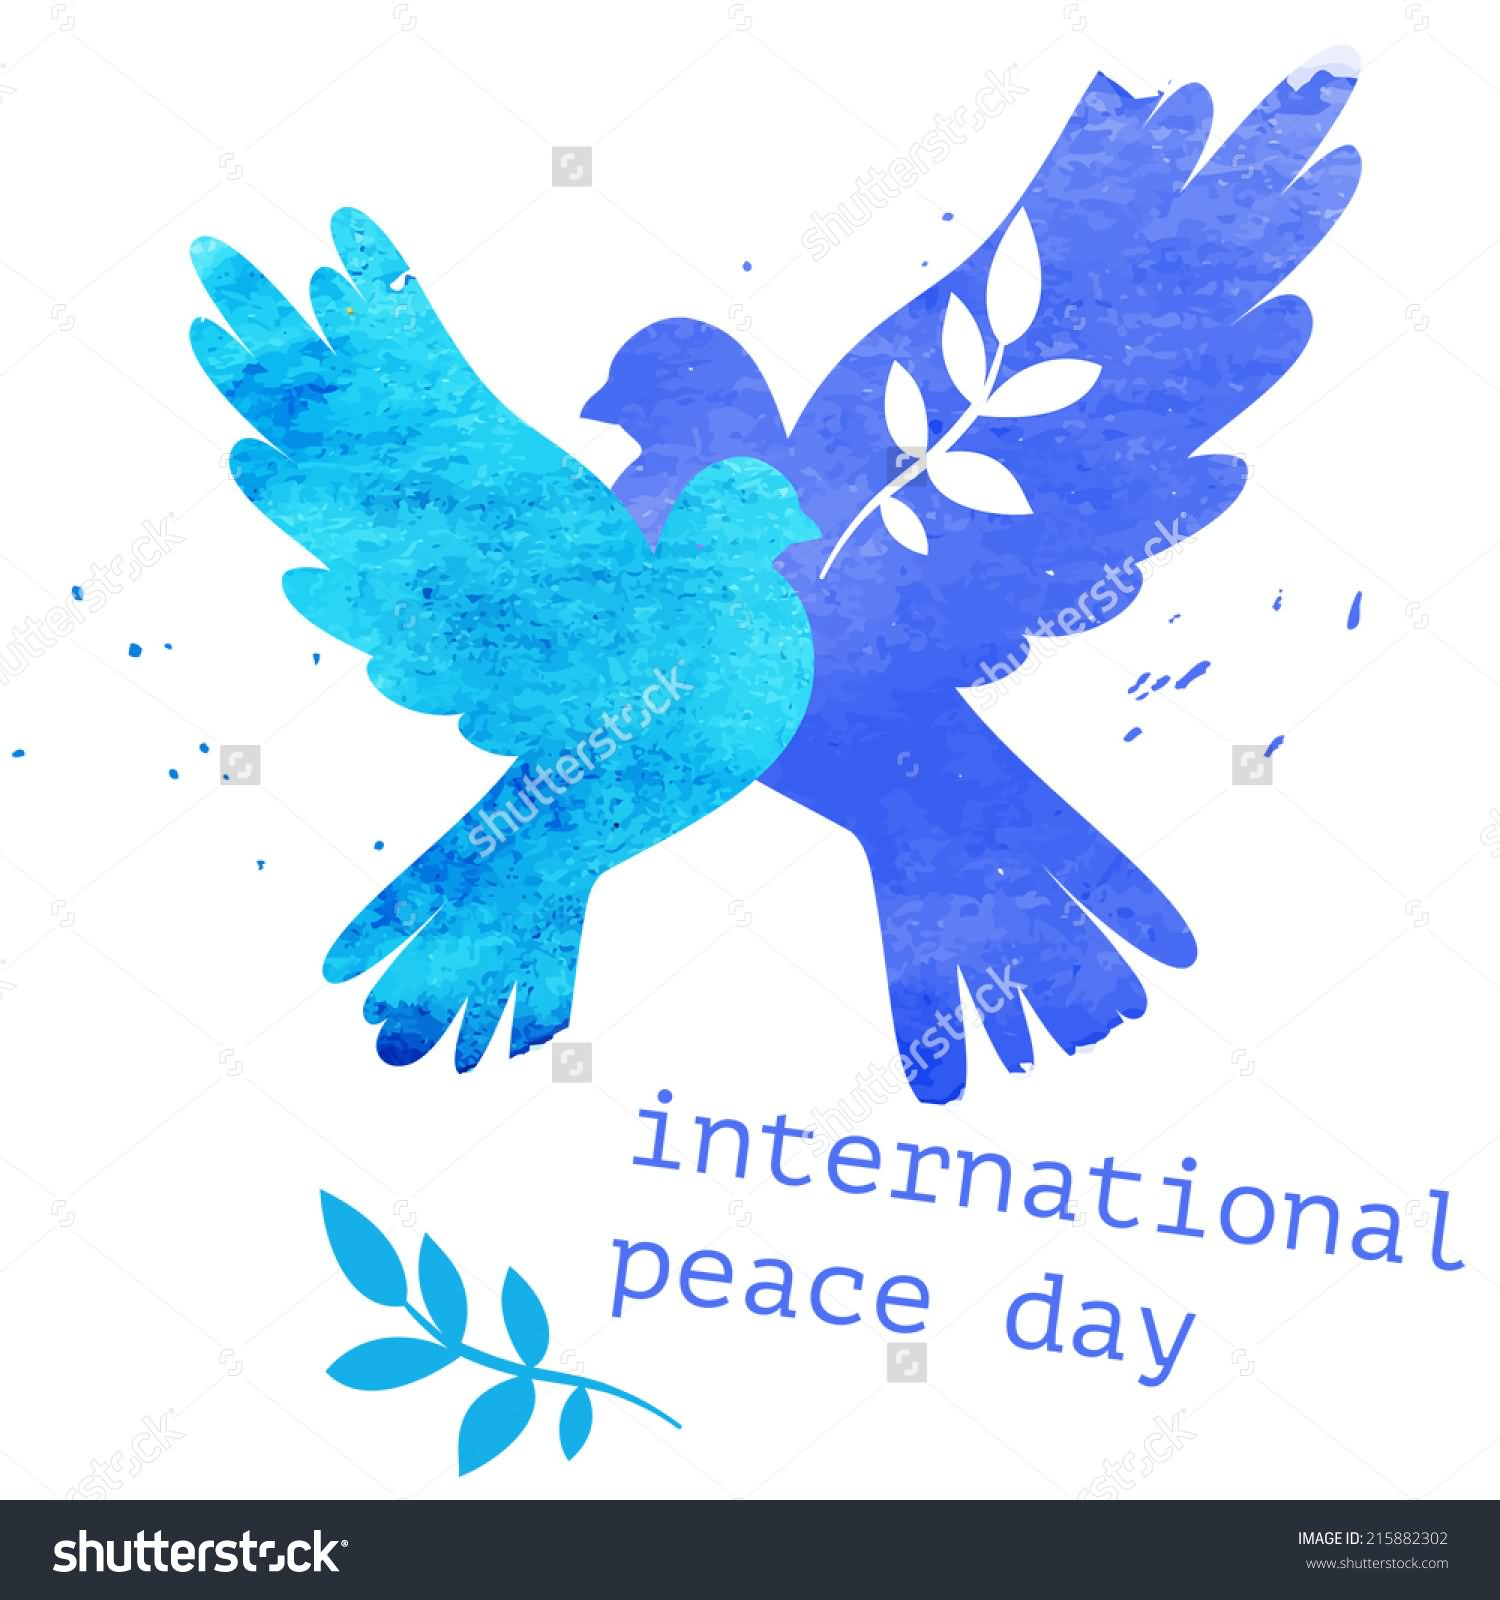 136-International Peace Day Wishes